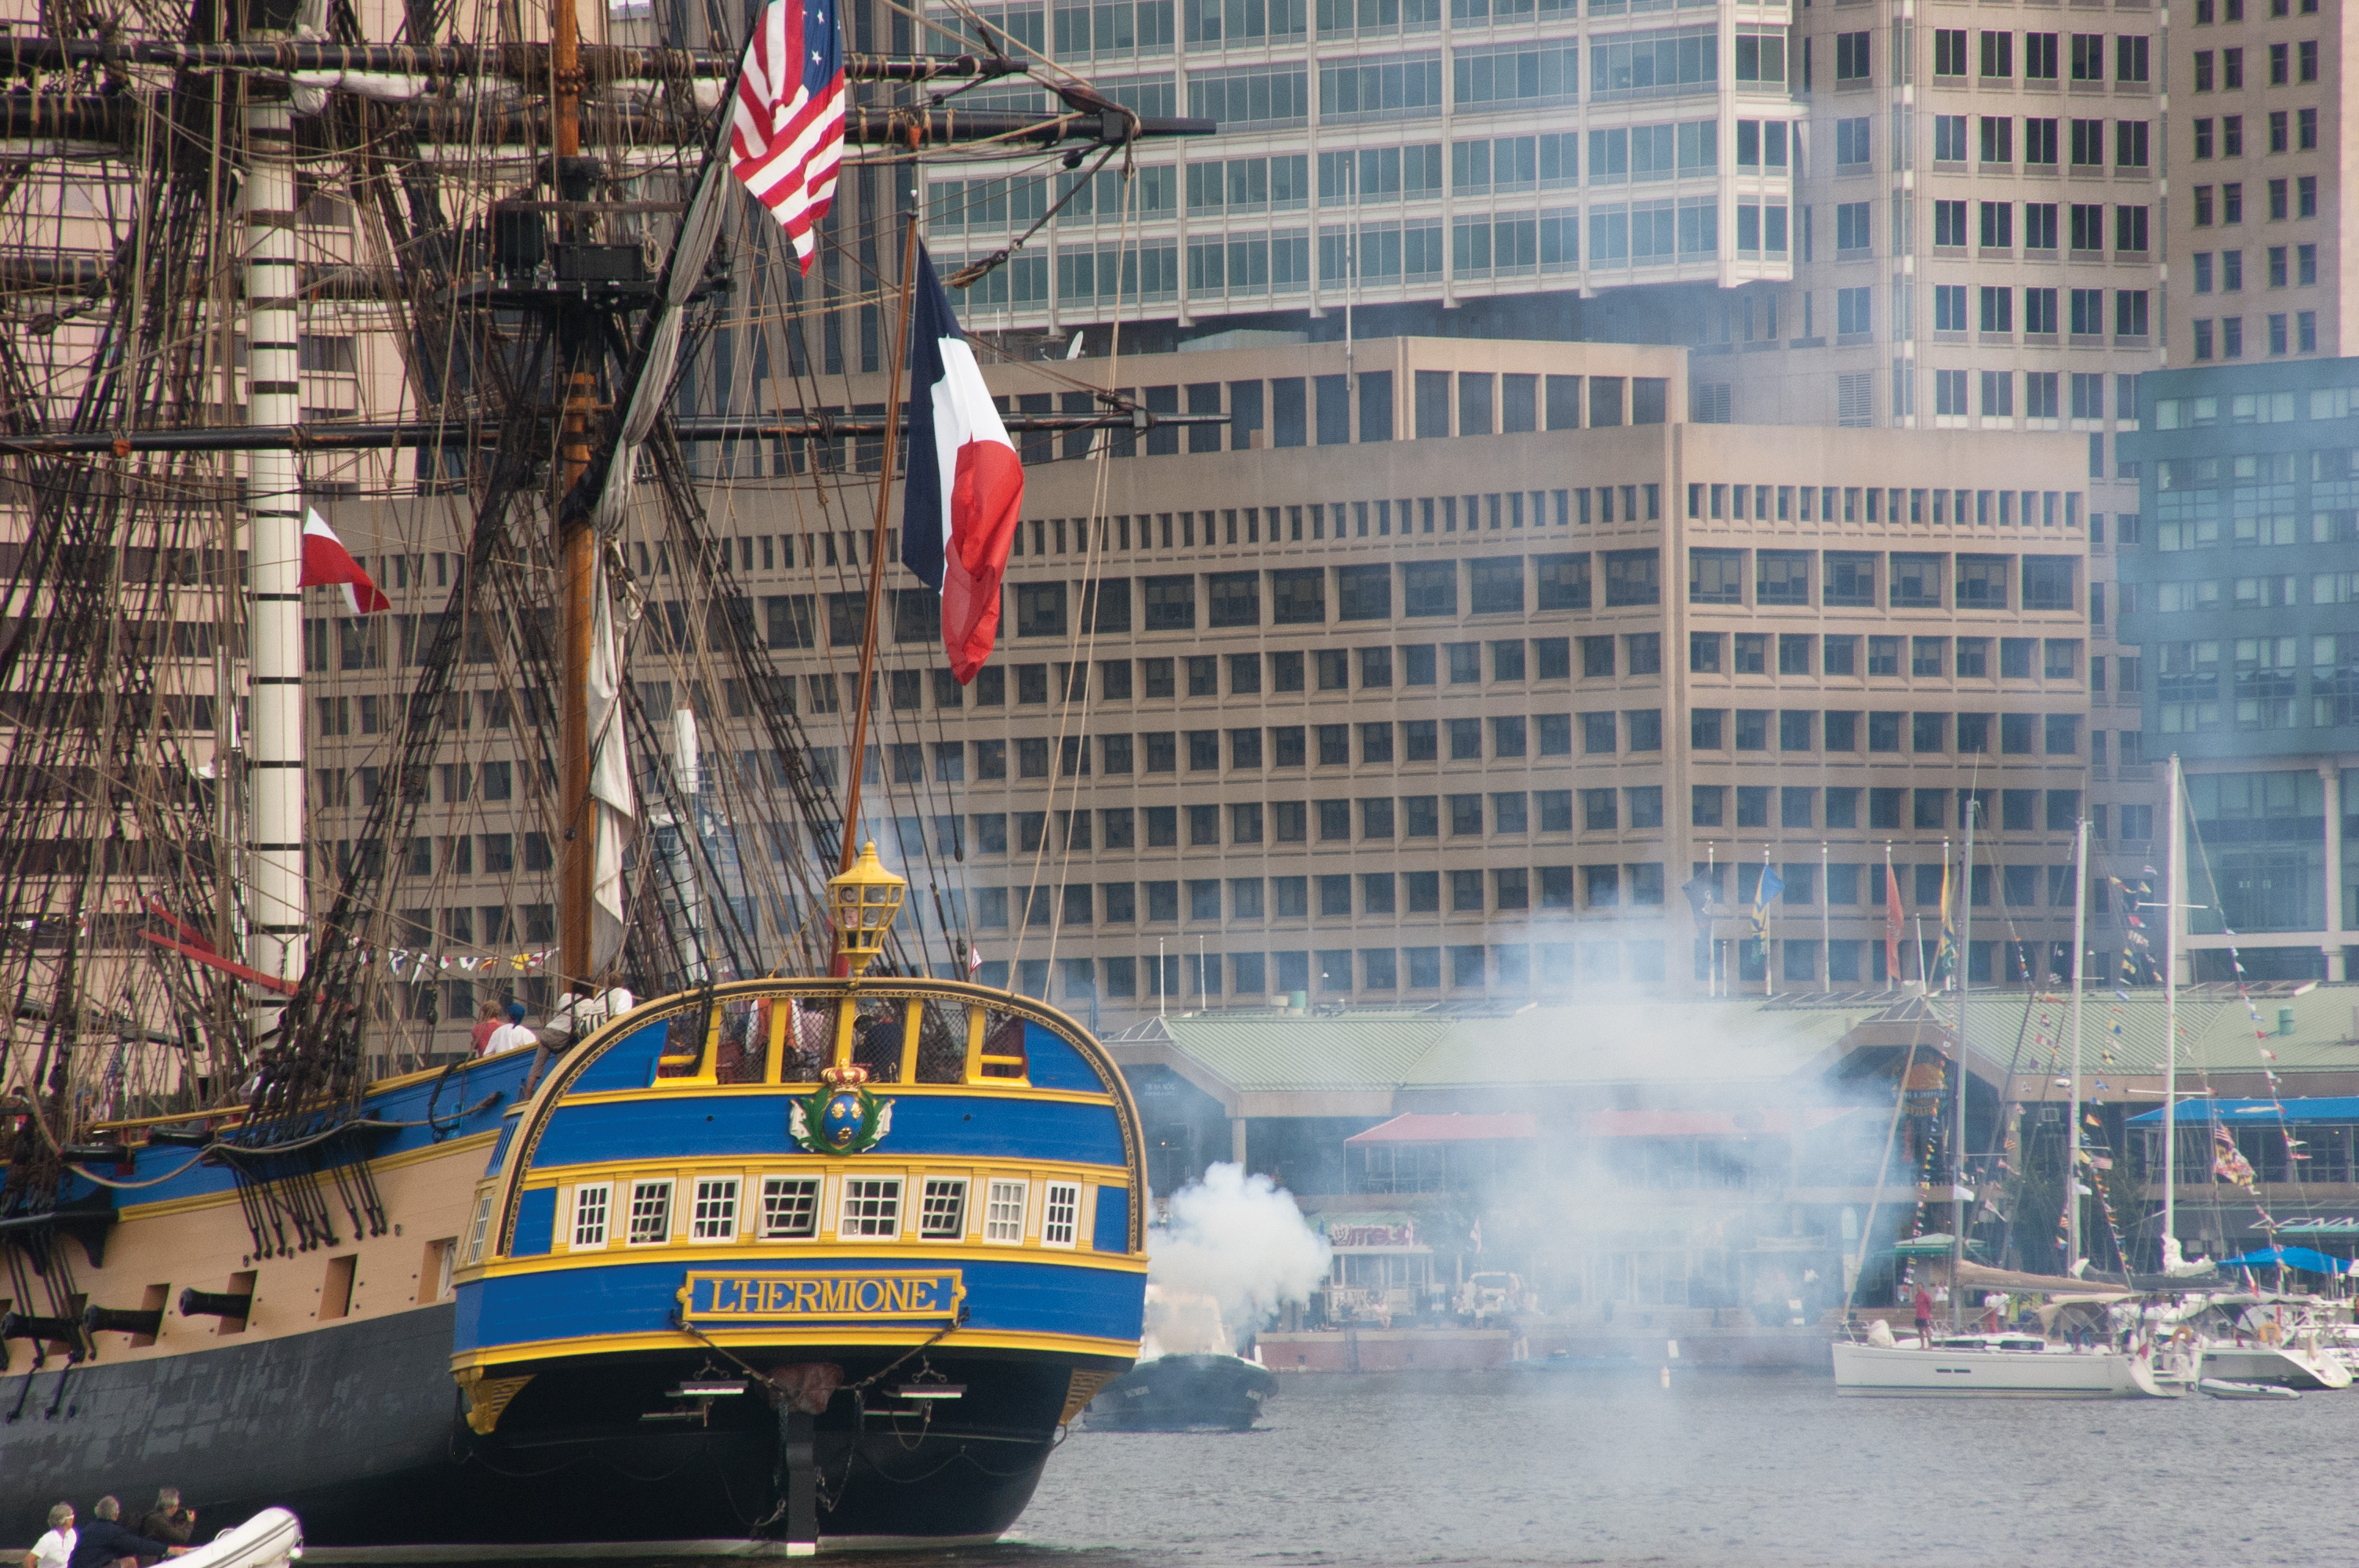 The replica Hermione fires a series of blank rounds to greet the city of Baltimore. USNI News photo.